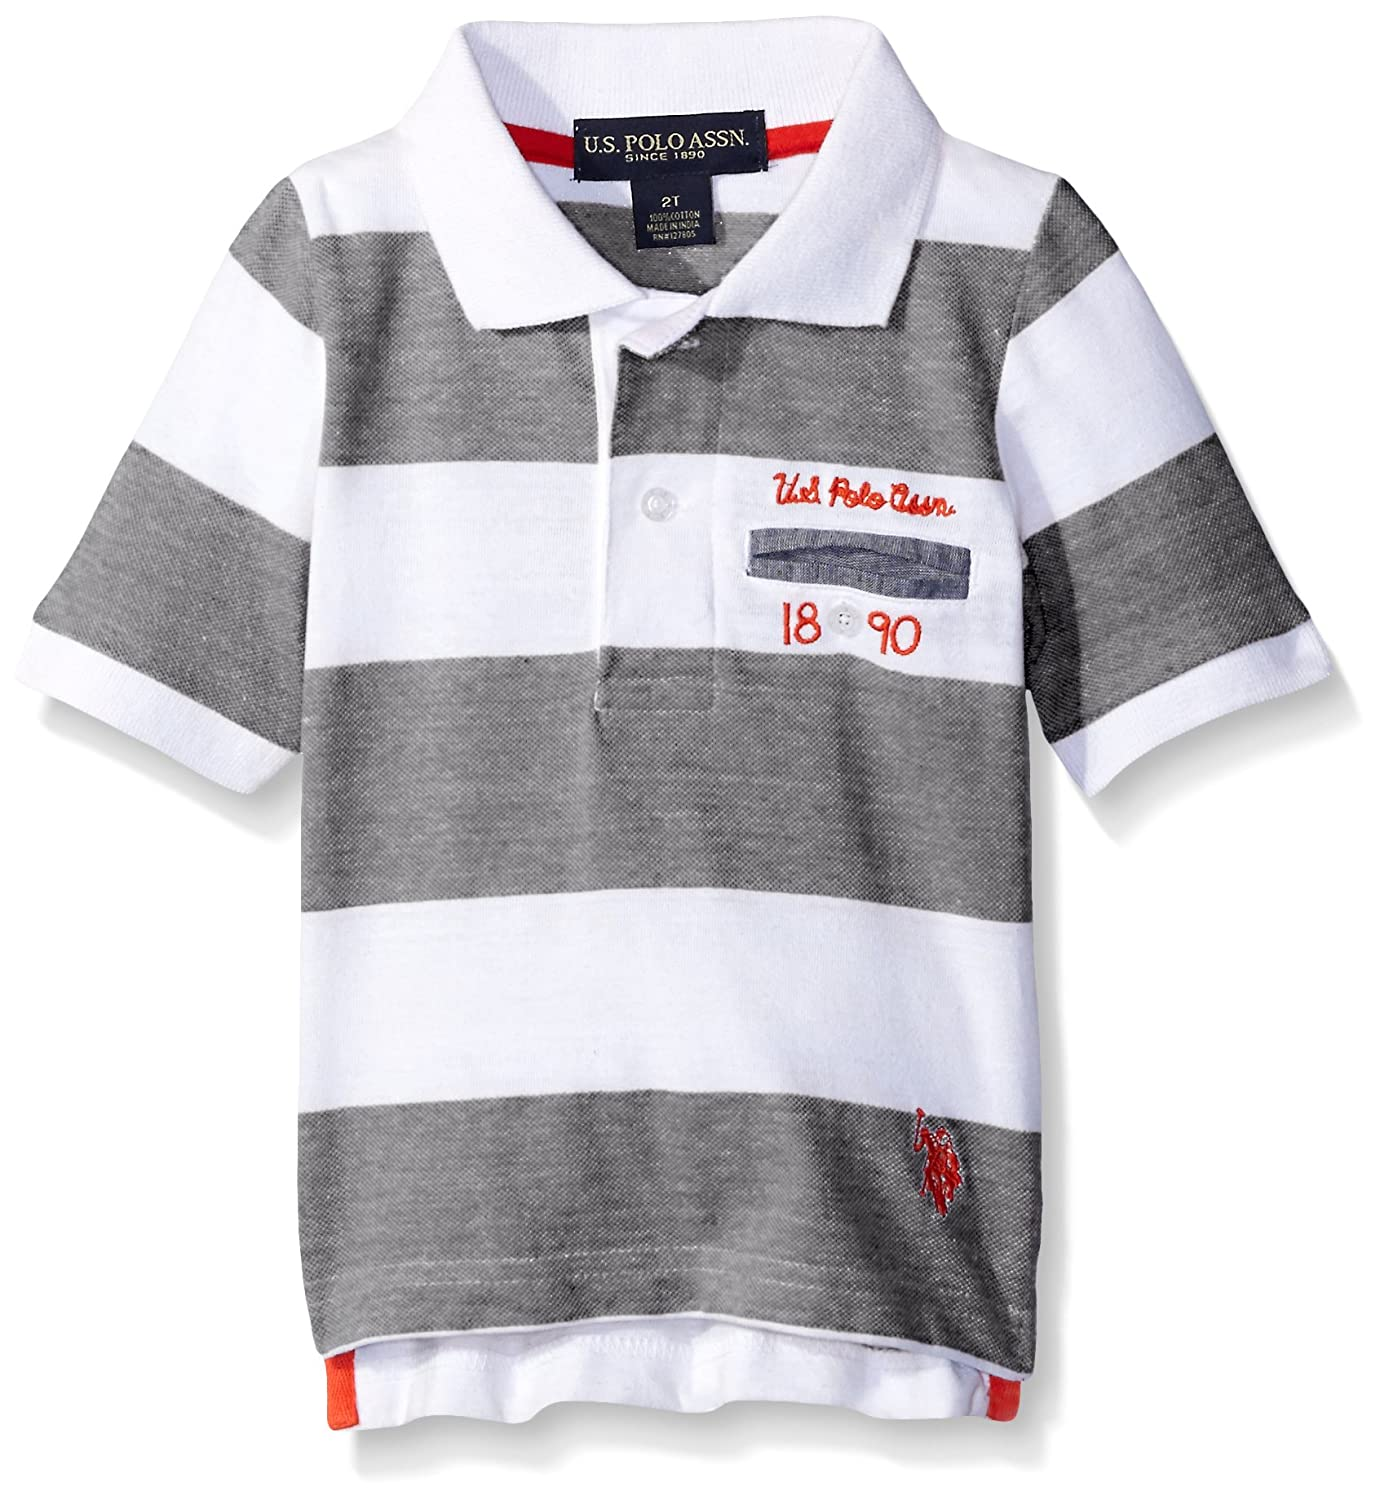 U.S. Polo Assn. Boys' Striped Jersey Polo Shirt SD57